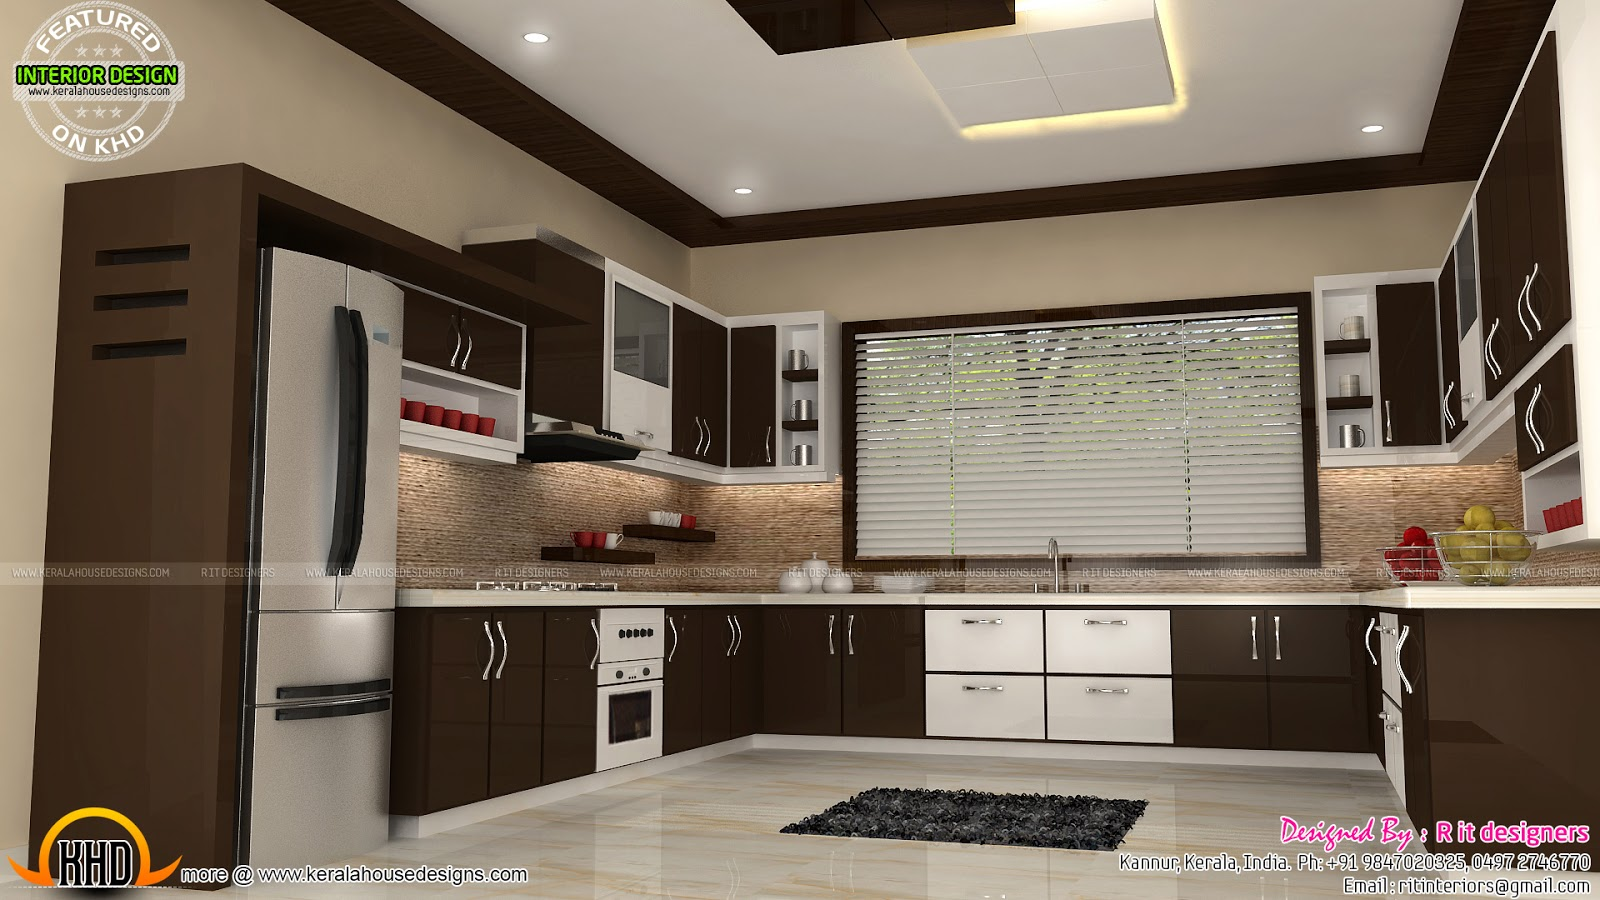 Kerala home design and floor plans interiors of bedrooms and kitchen - House interior designs ...